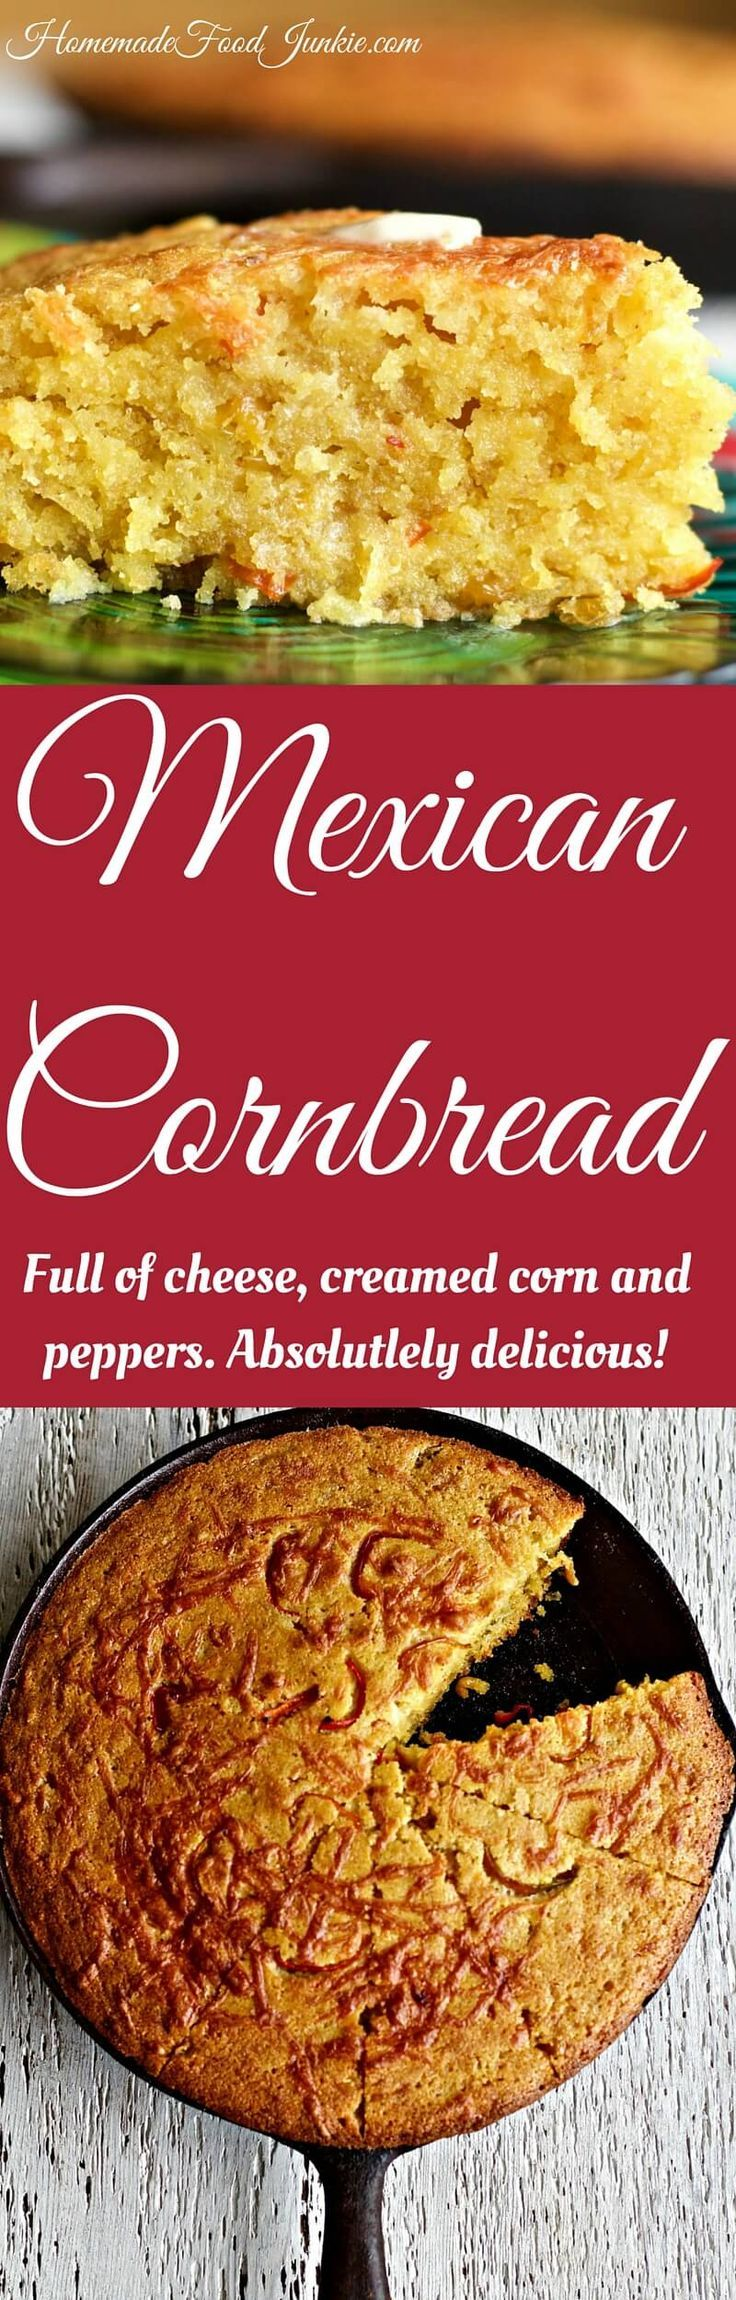 Mexican Cornbread by HomemadeFoodJunkie.com